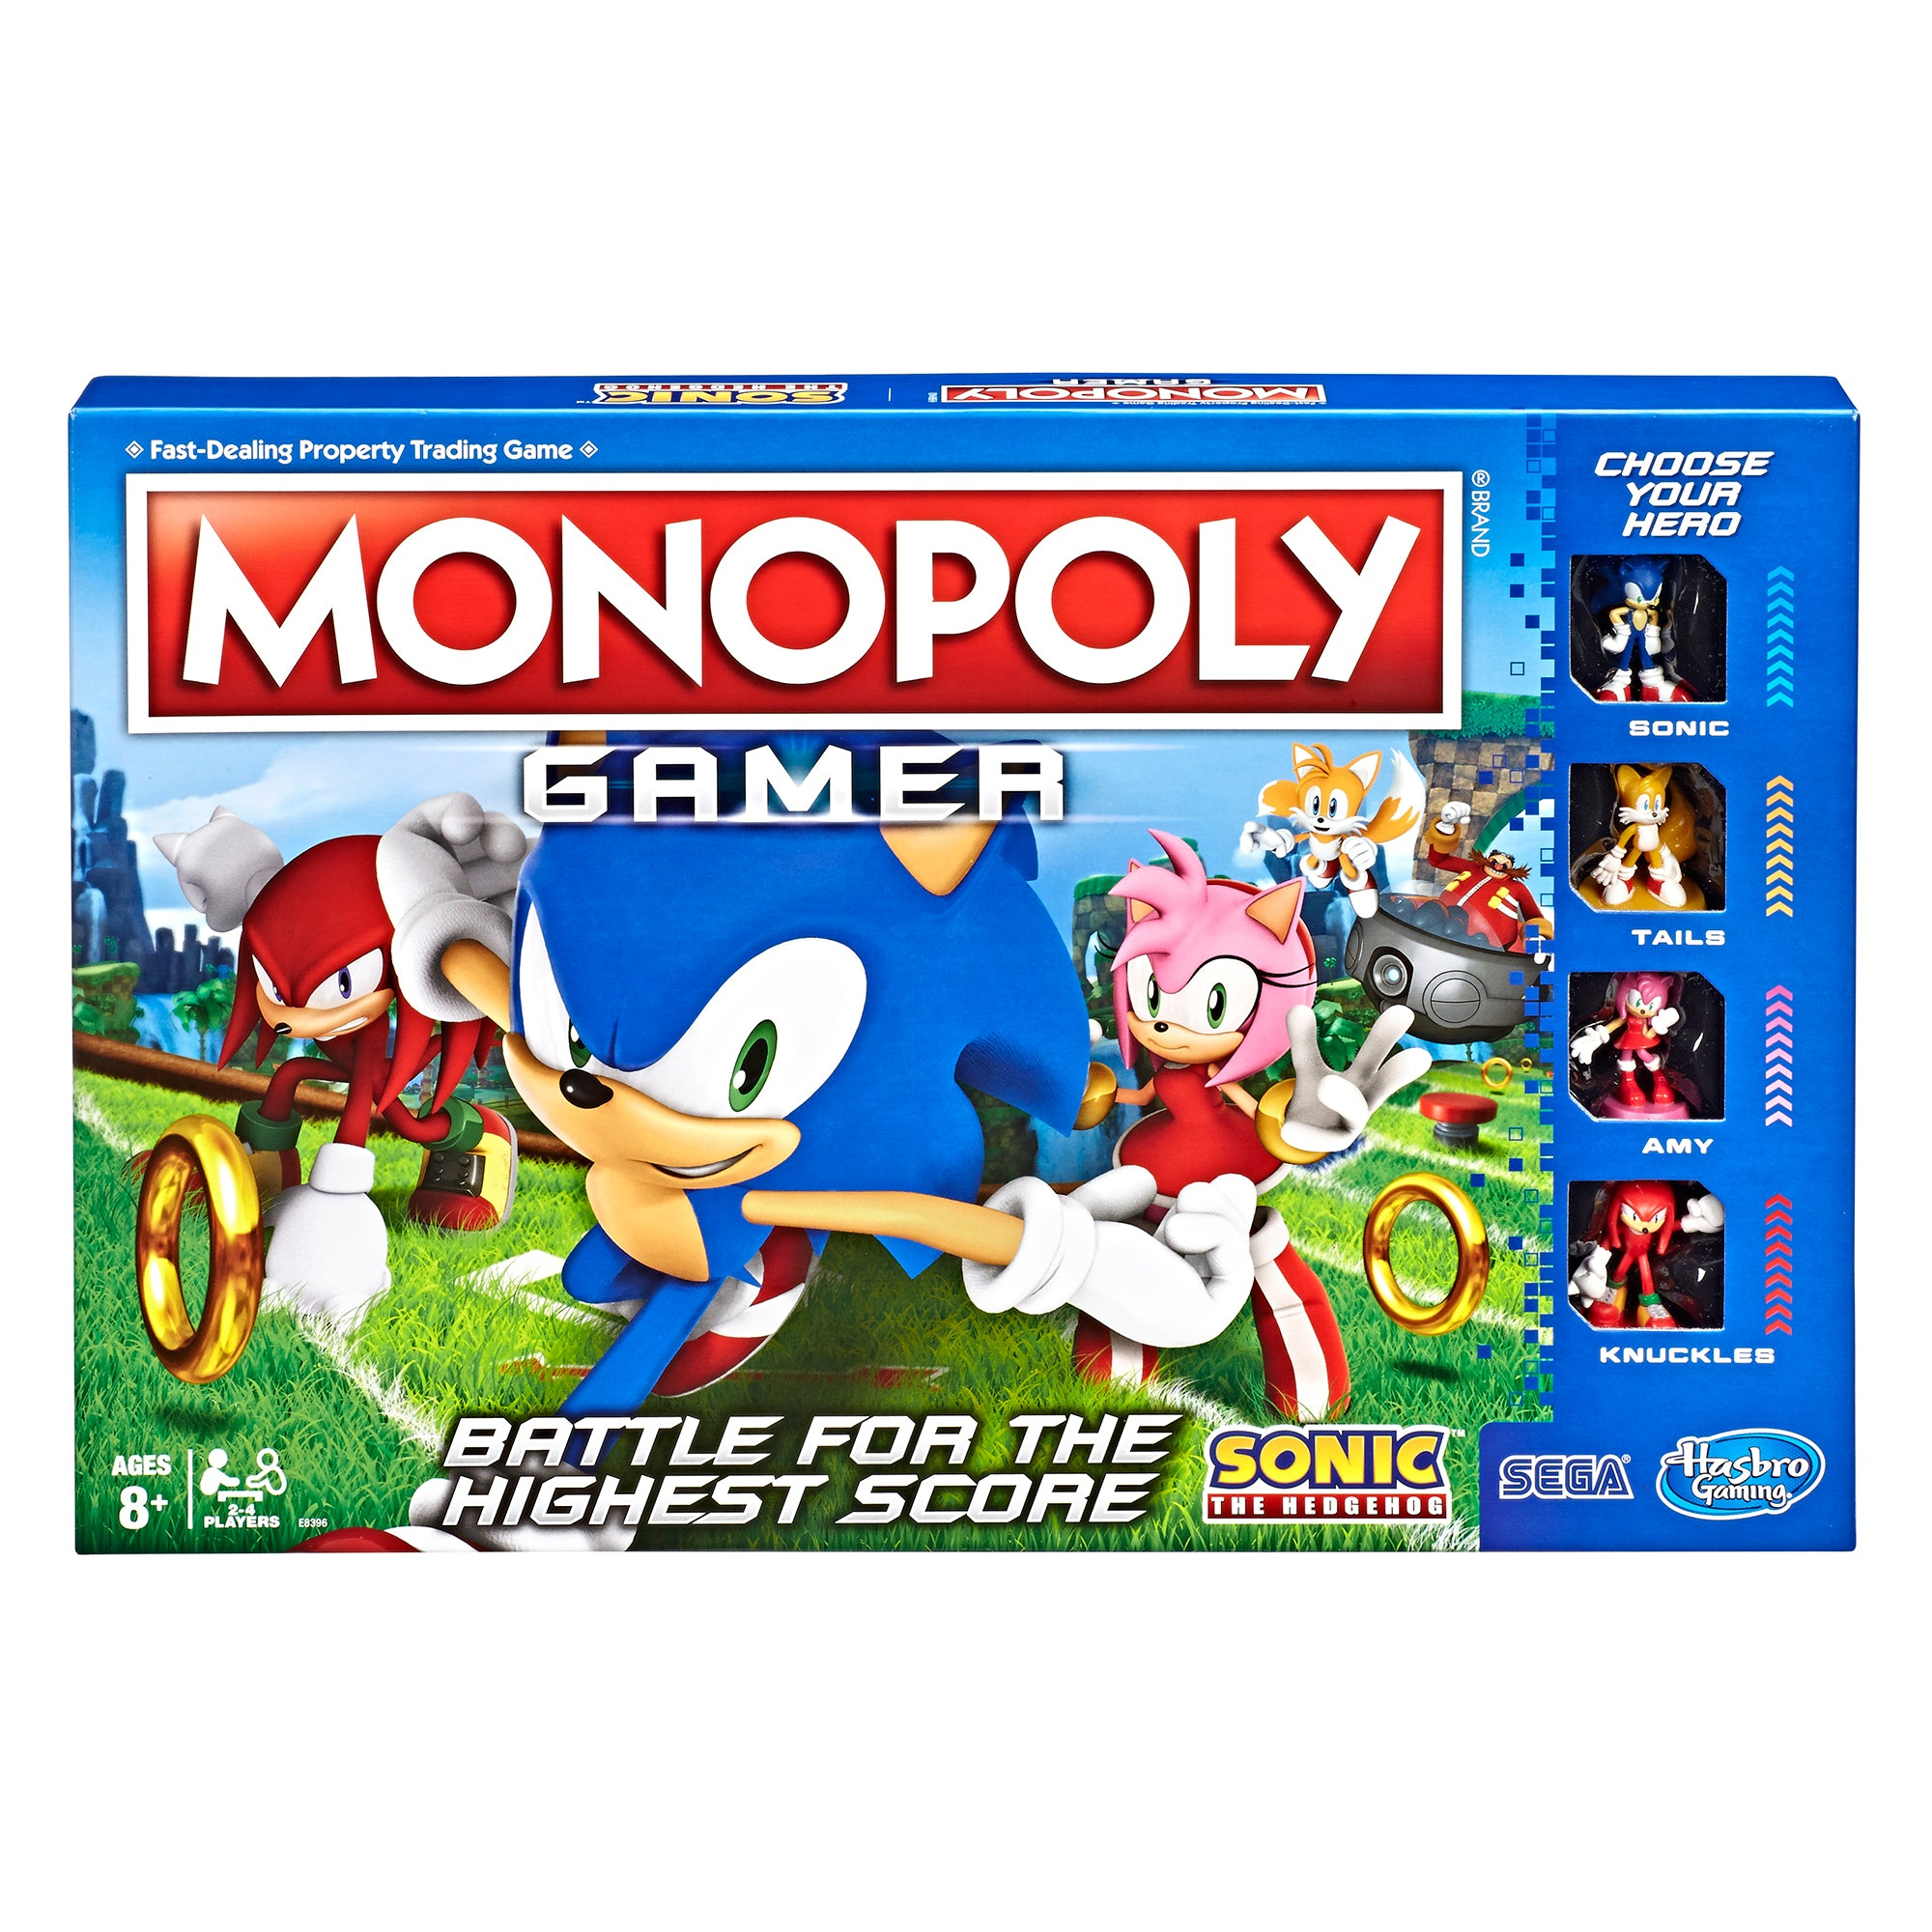 Monopoly Gamer Sonic the Hedgehog Game Packaging